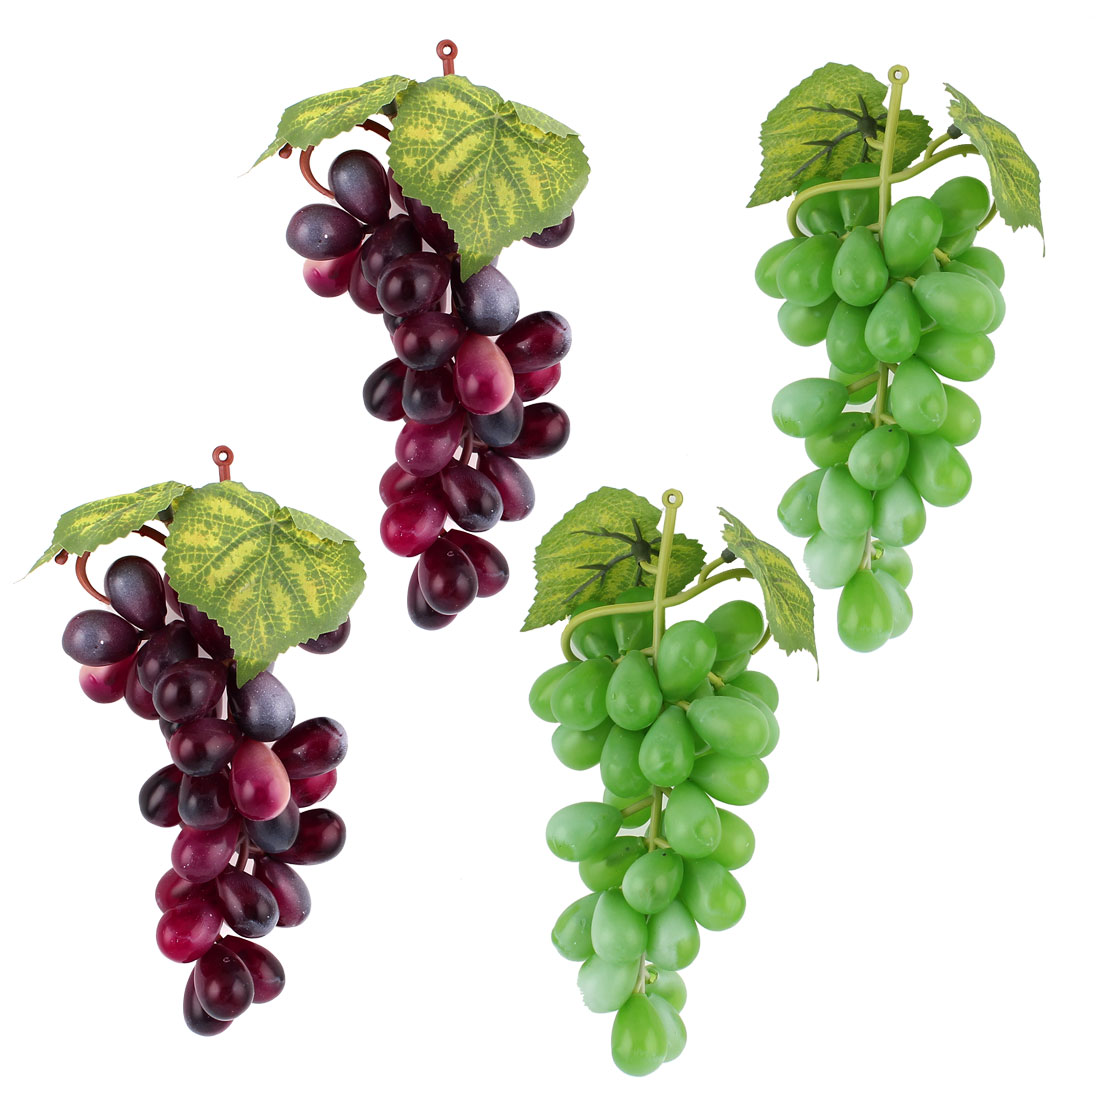 Desk Table Home Decor Artificial Simulation Grapes Green Dark Purple 4 Pcs